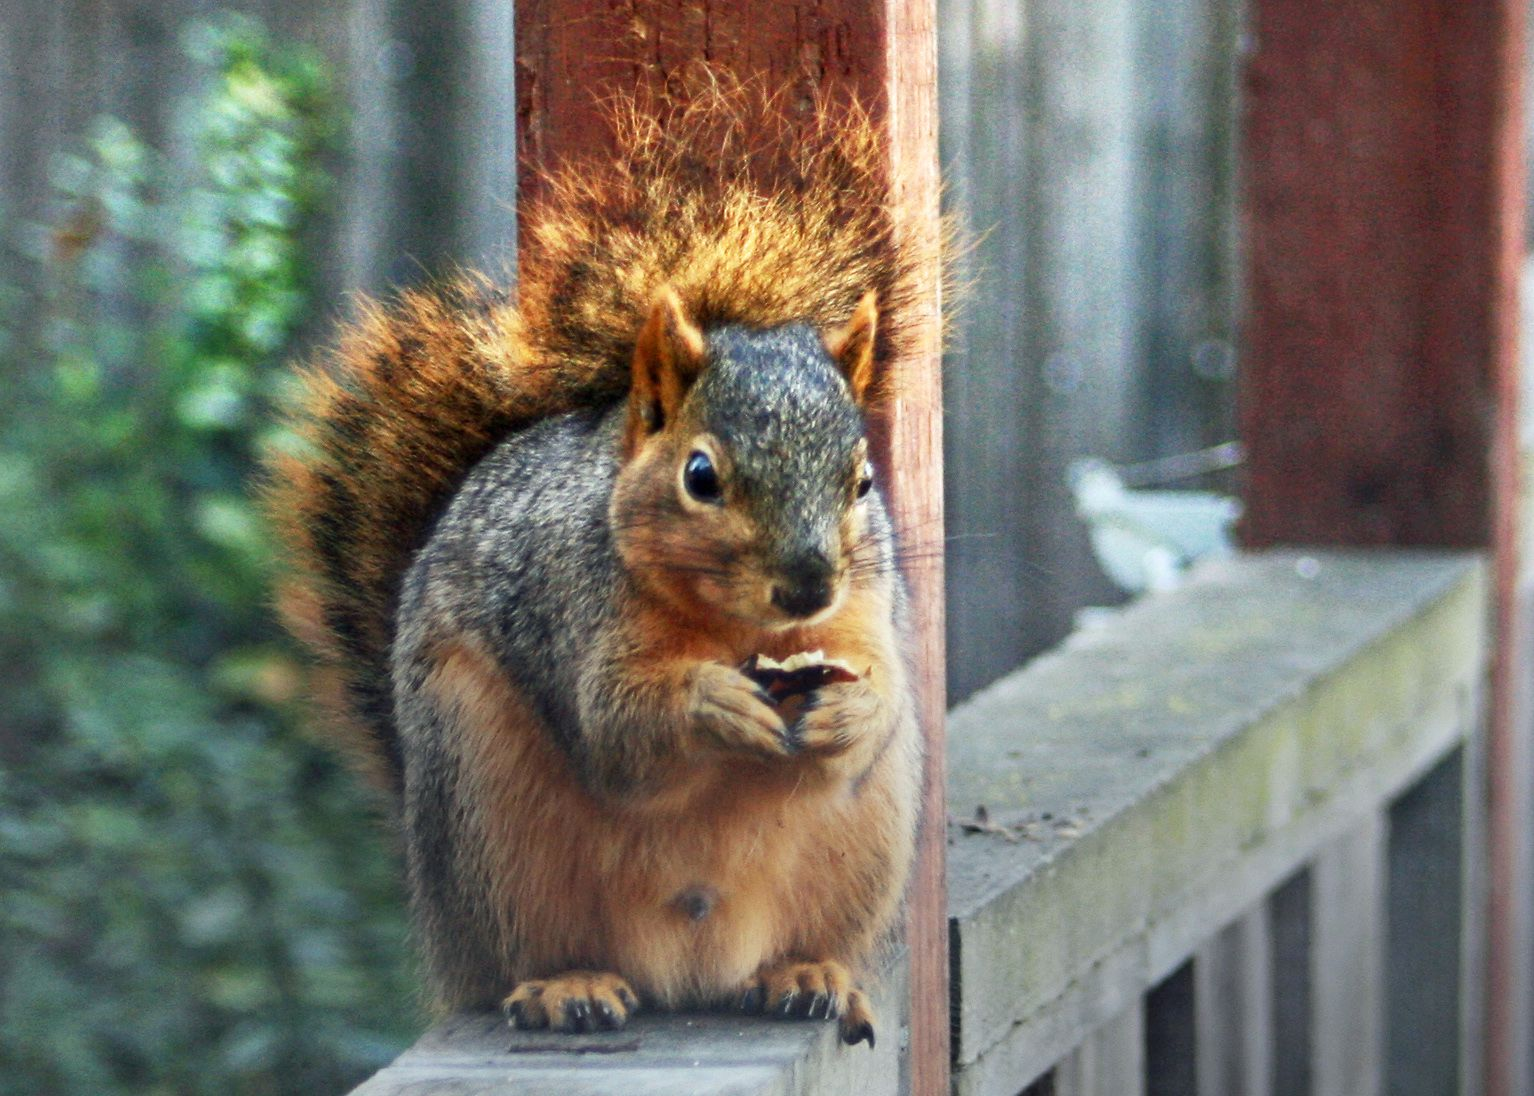 Reader has simply had his fill of them, but can you really fault a squirrel for being a squirrel?